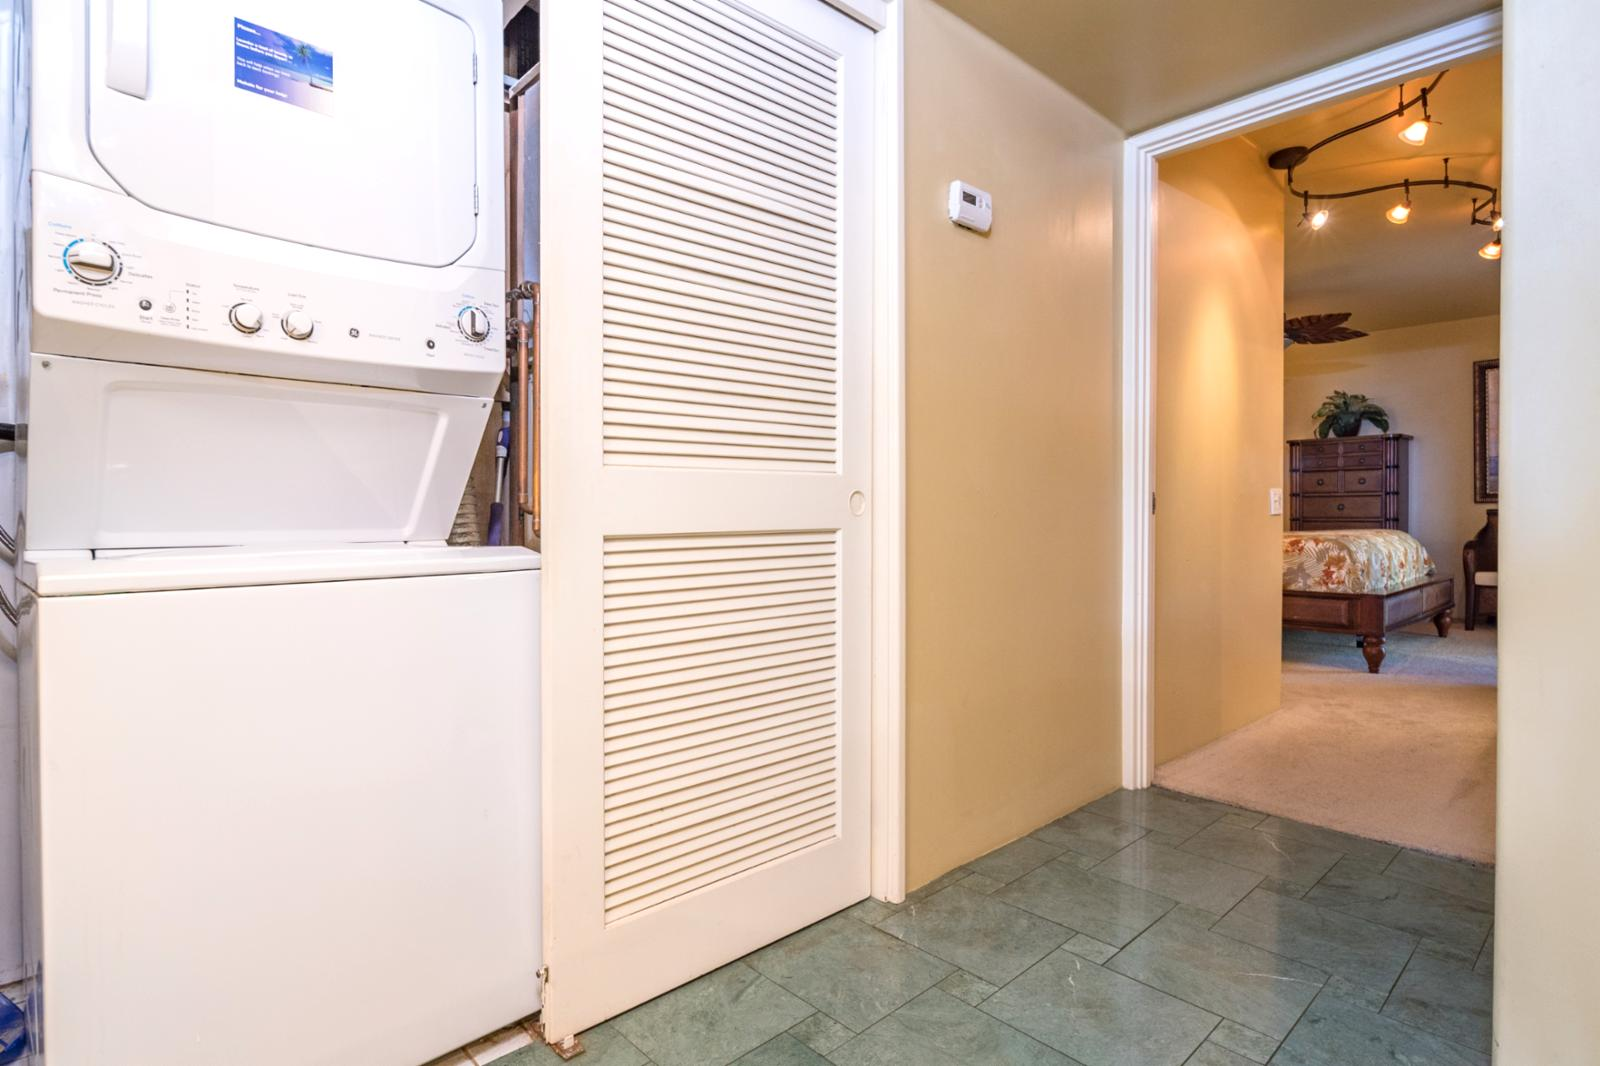 In villa laundry unit, ready for your use!